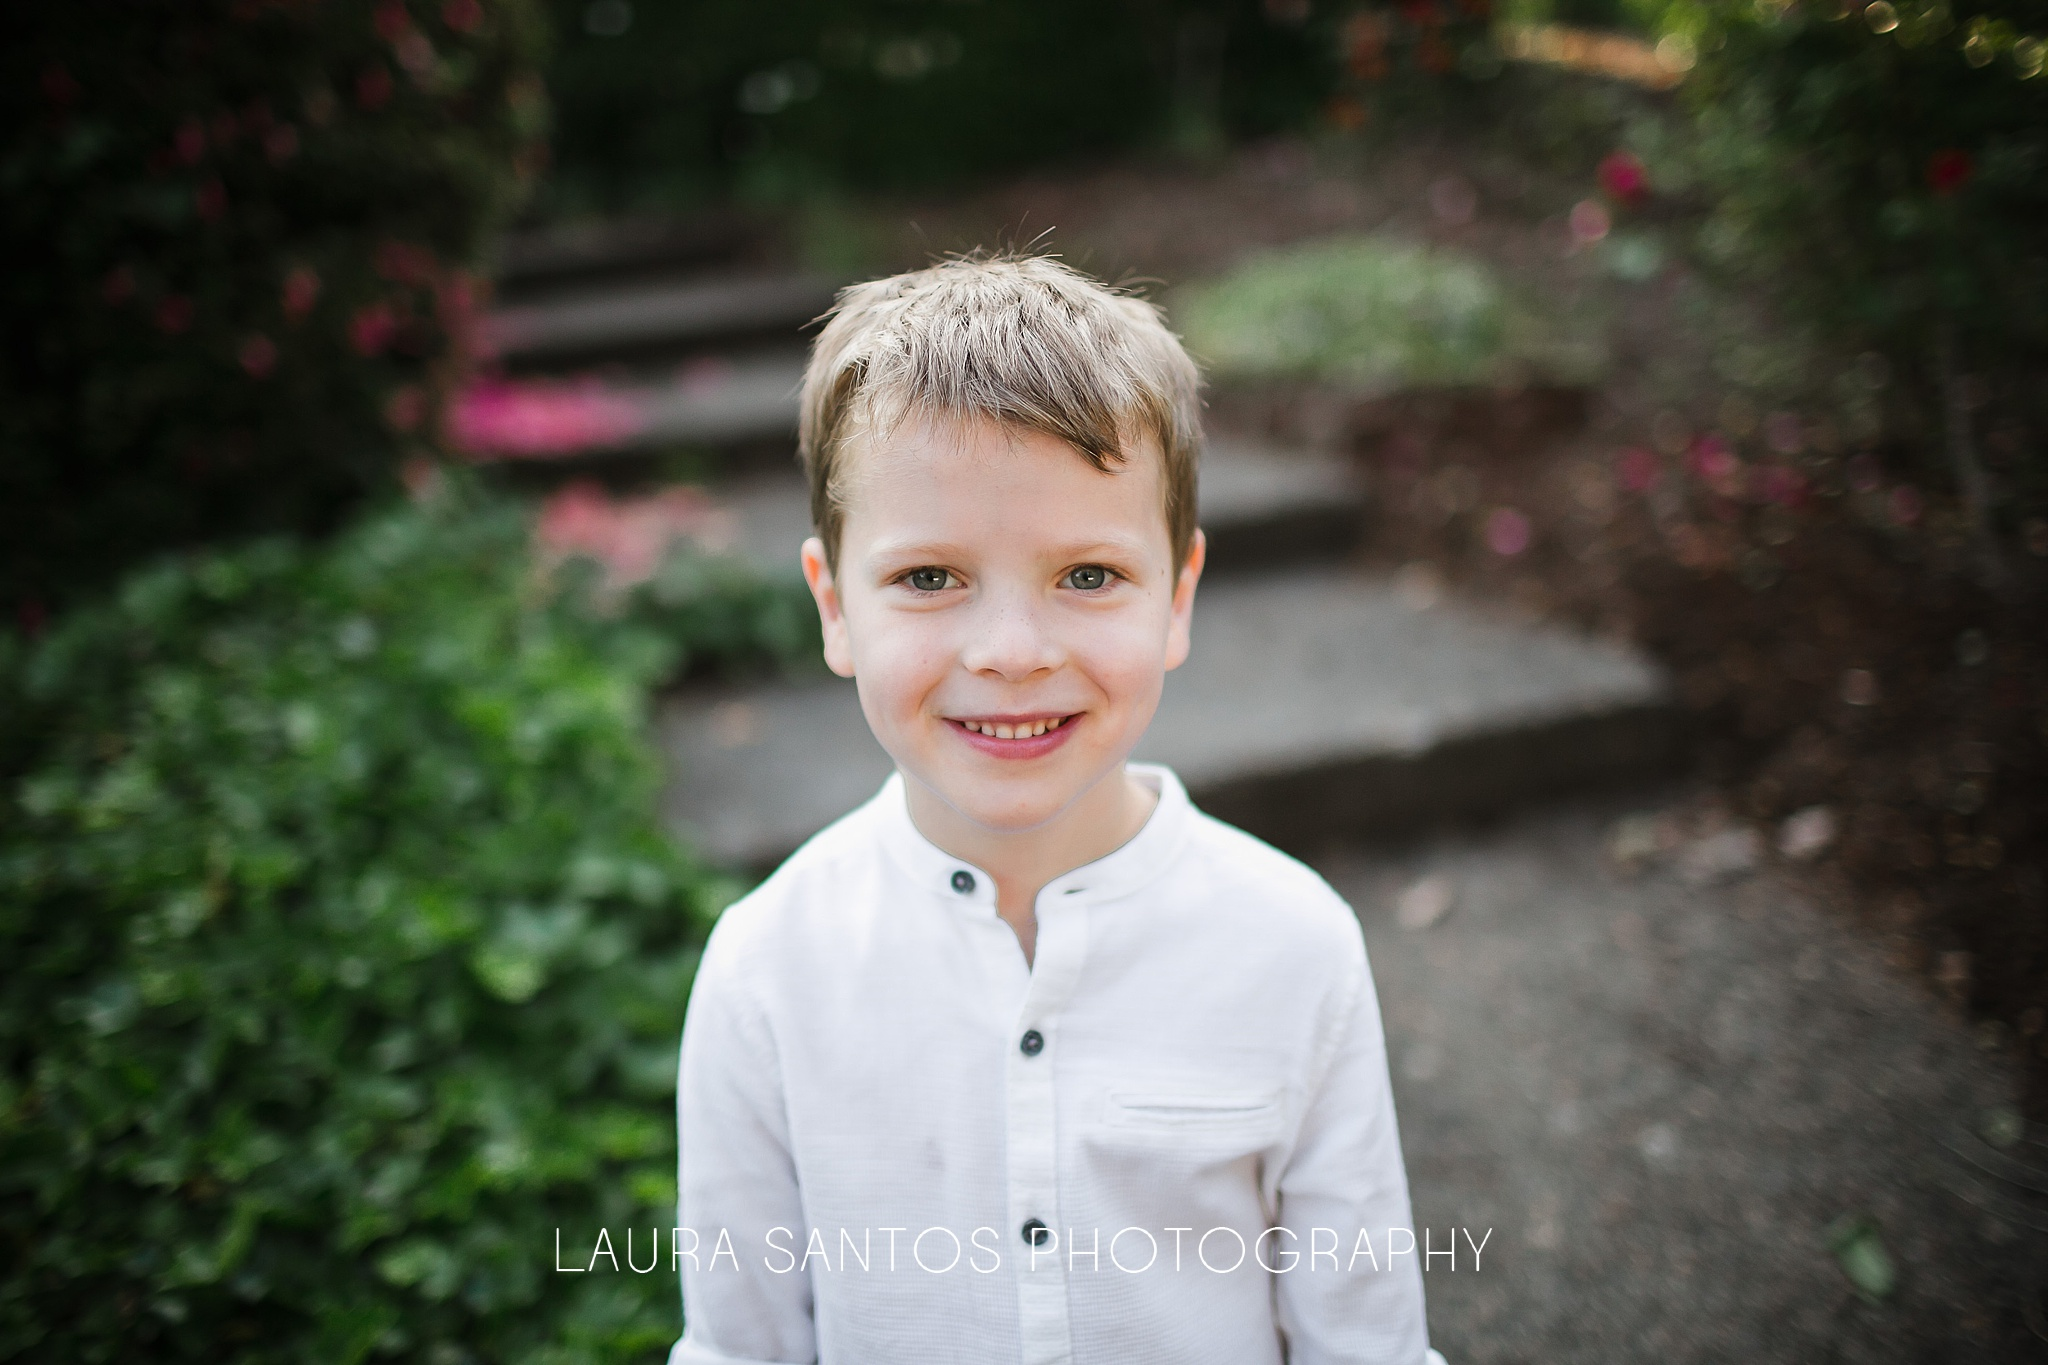 Laura Santos Photography Portland Oregon Family Photographer_0965.jpg